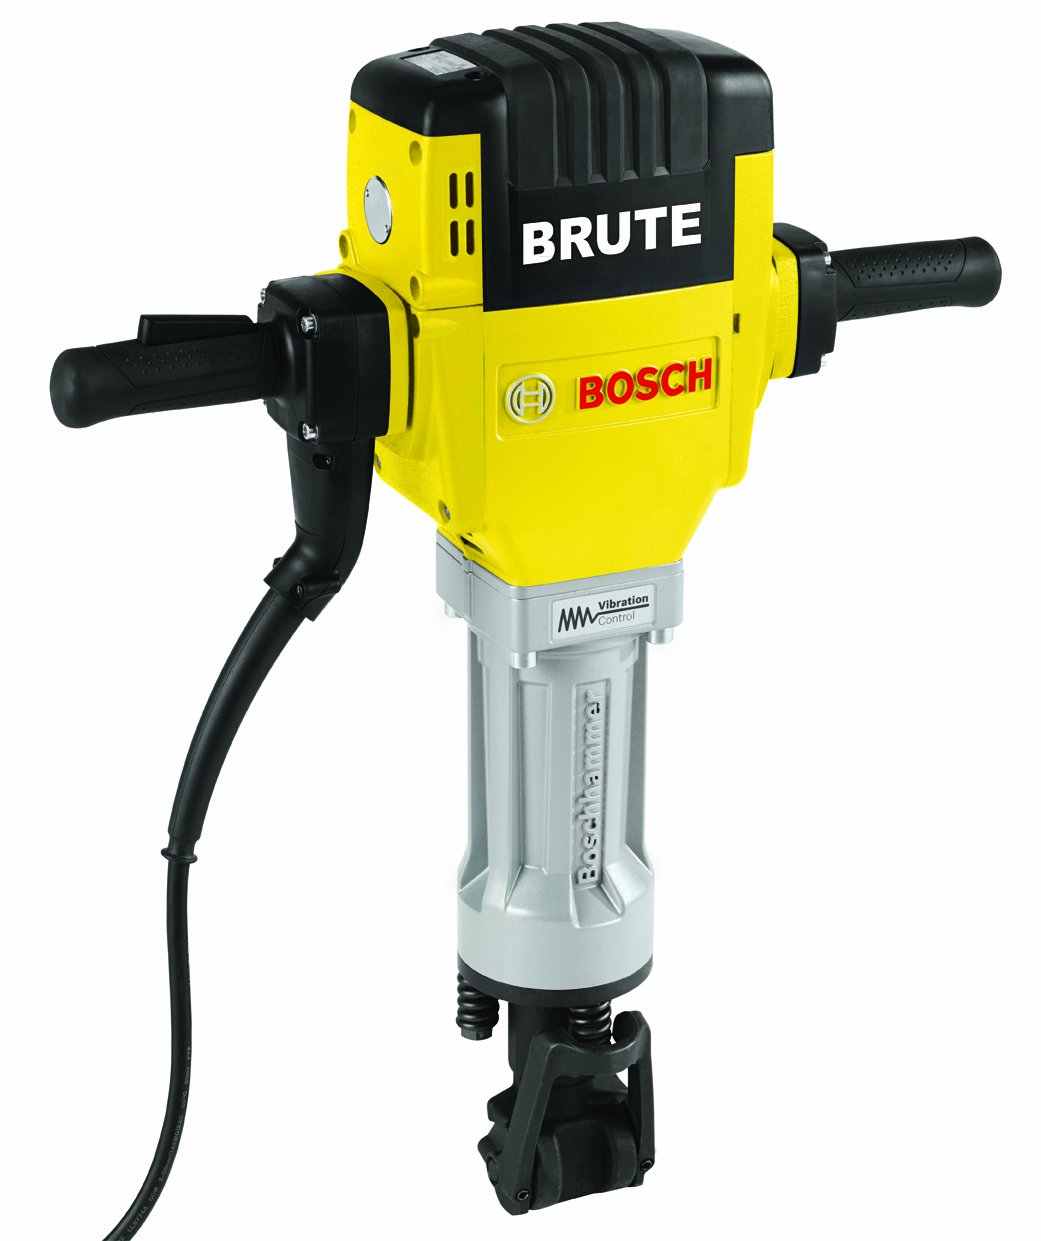 Bosch Bare-Tool BH2760VC 120-Volt 1-1/8 Brute Breaker - Power Rotary  Hammers - Amazon.com